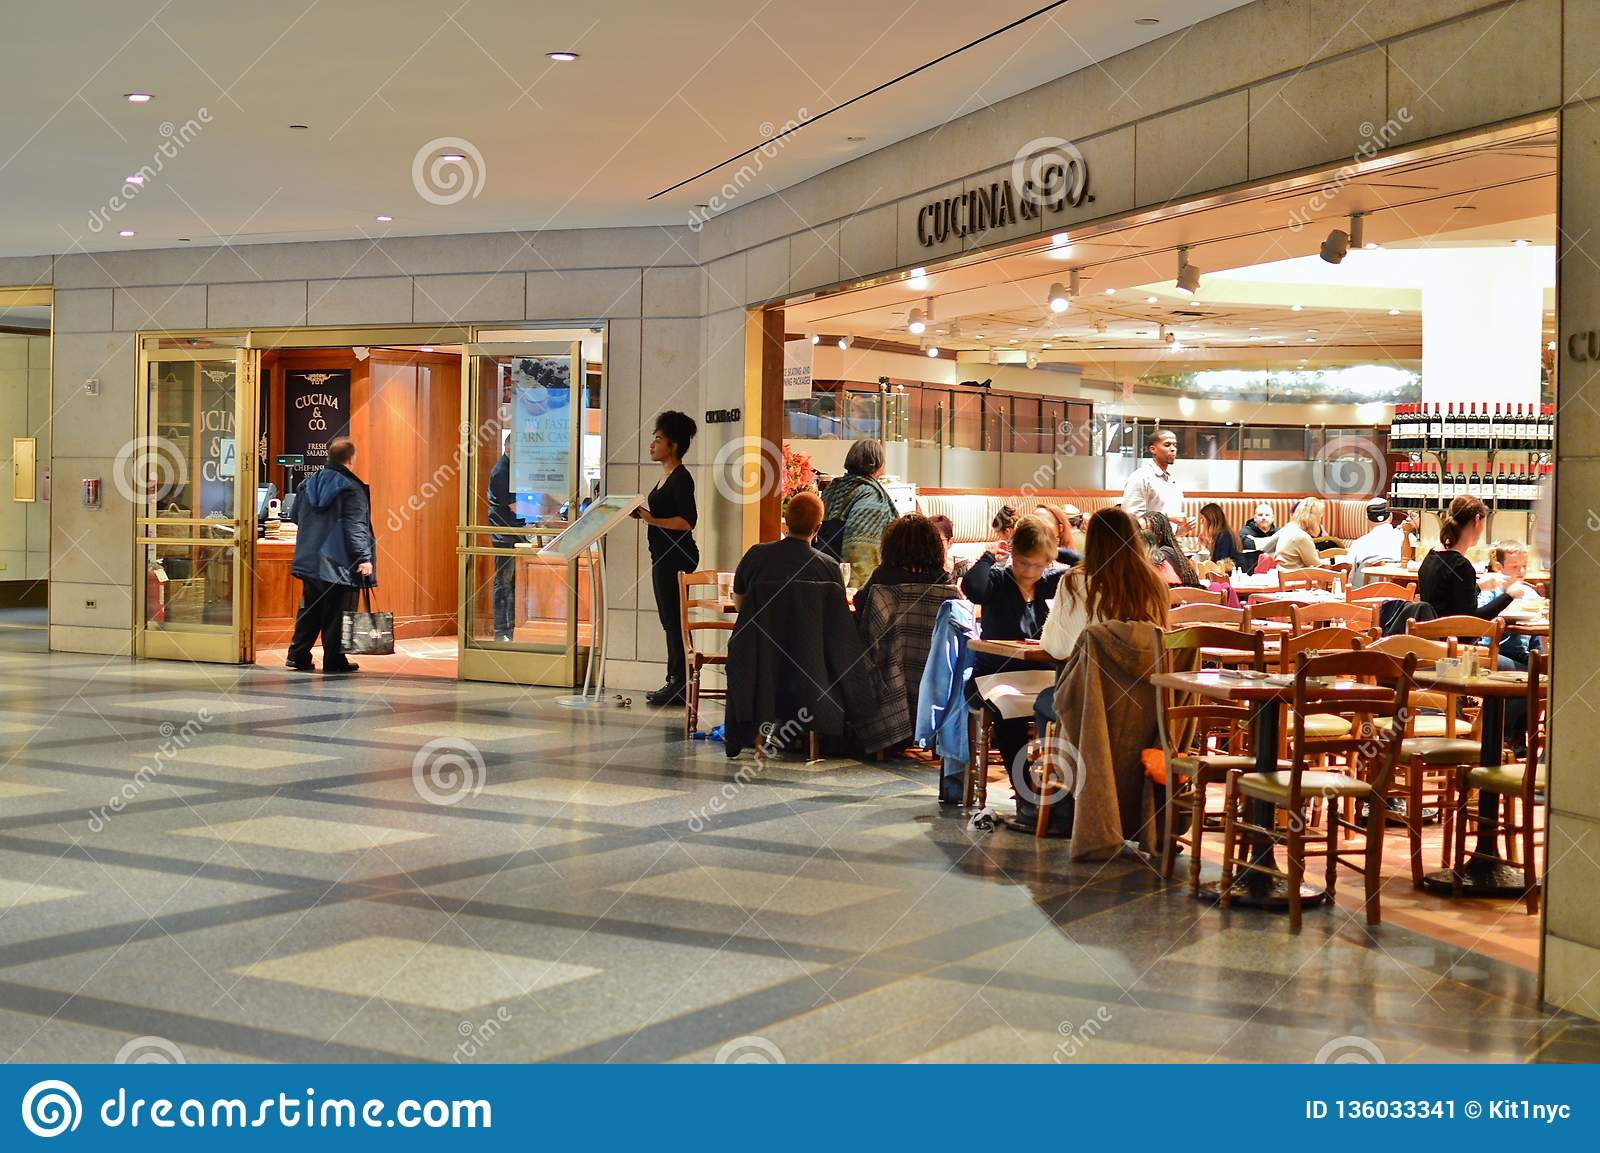 Cucina & Co Rockefeller Center New York City Dining Restaurant Café People Eating Food